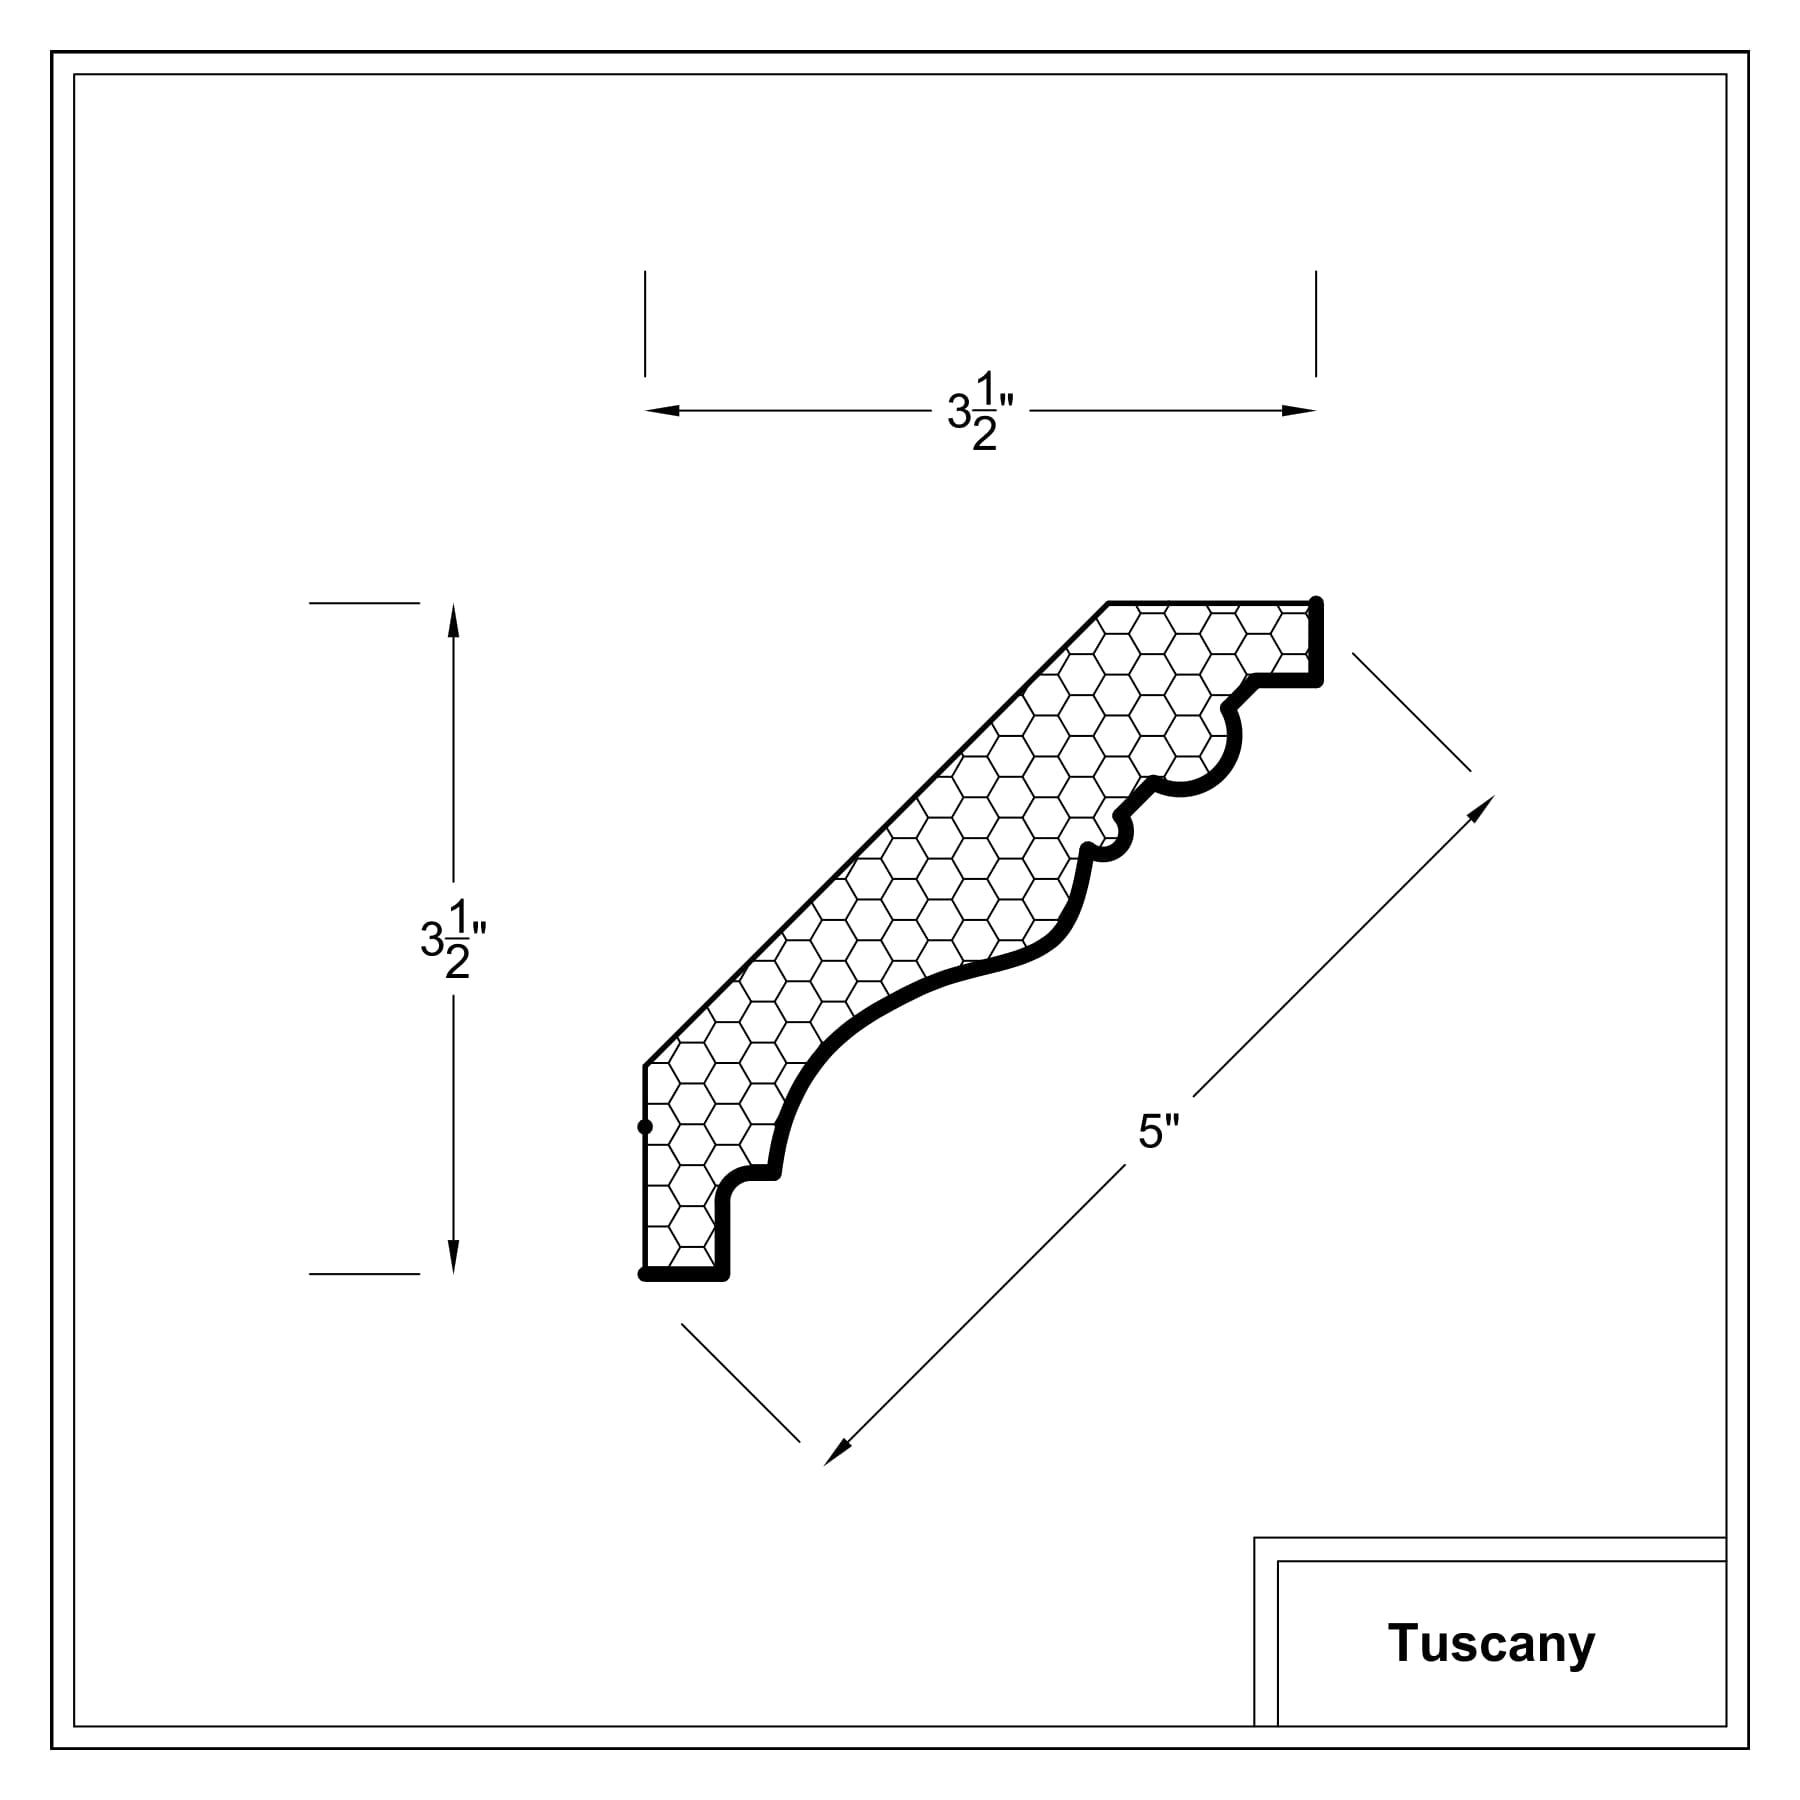 Crown moulding - Tuscany Cross Sections